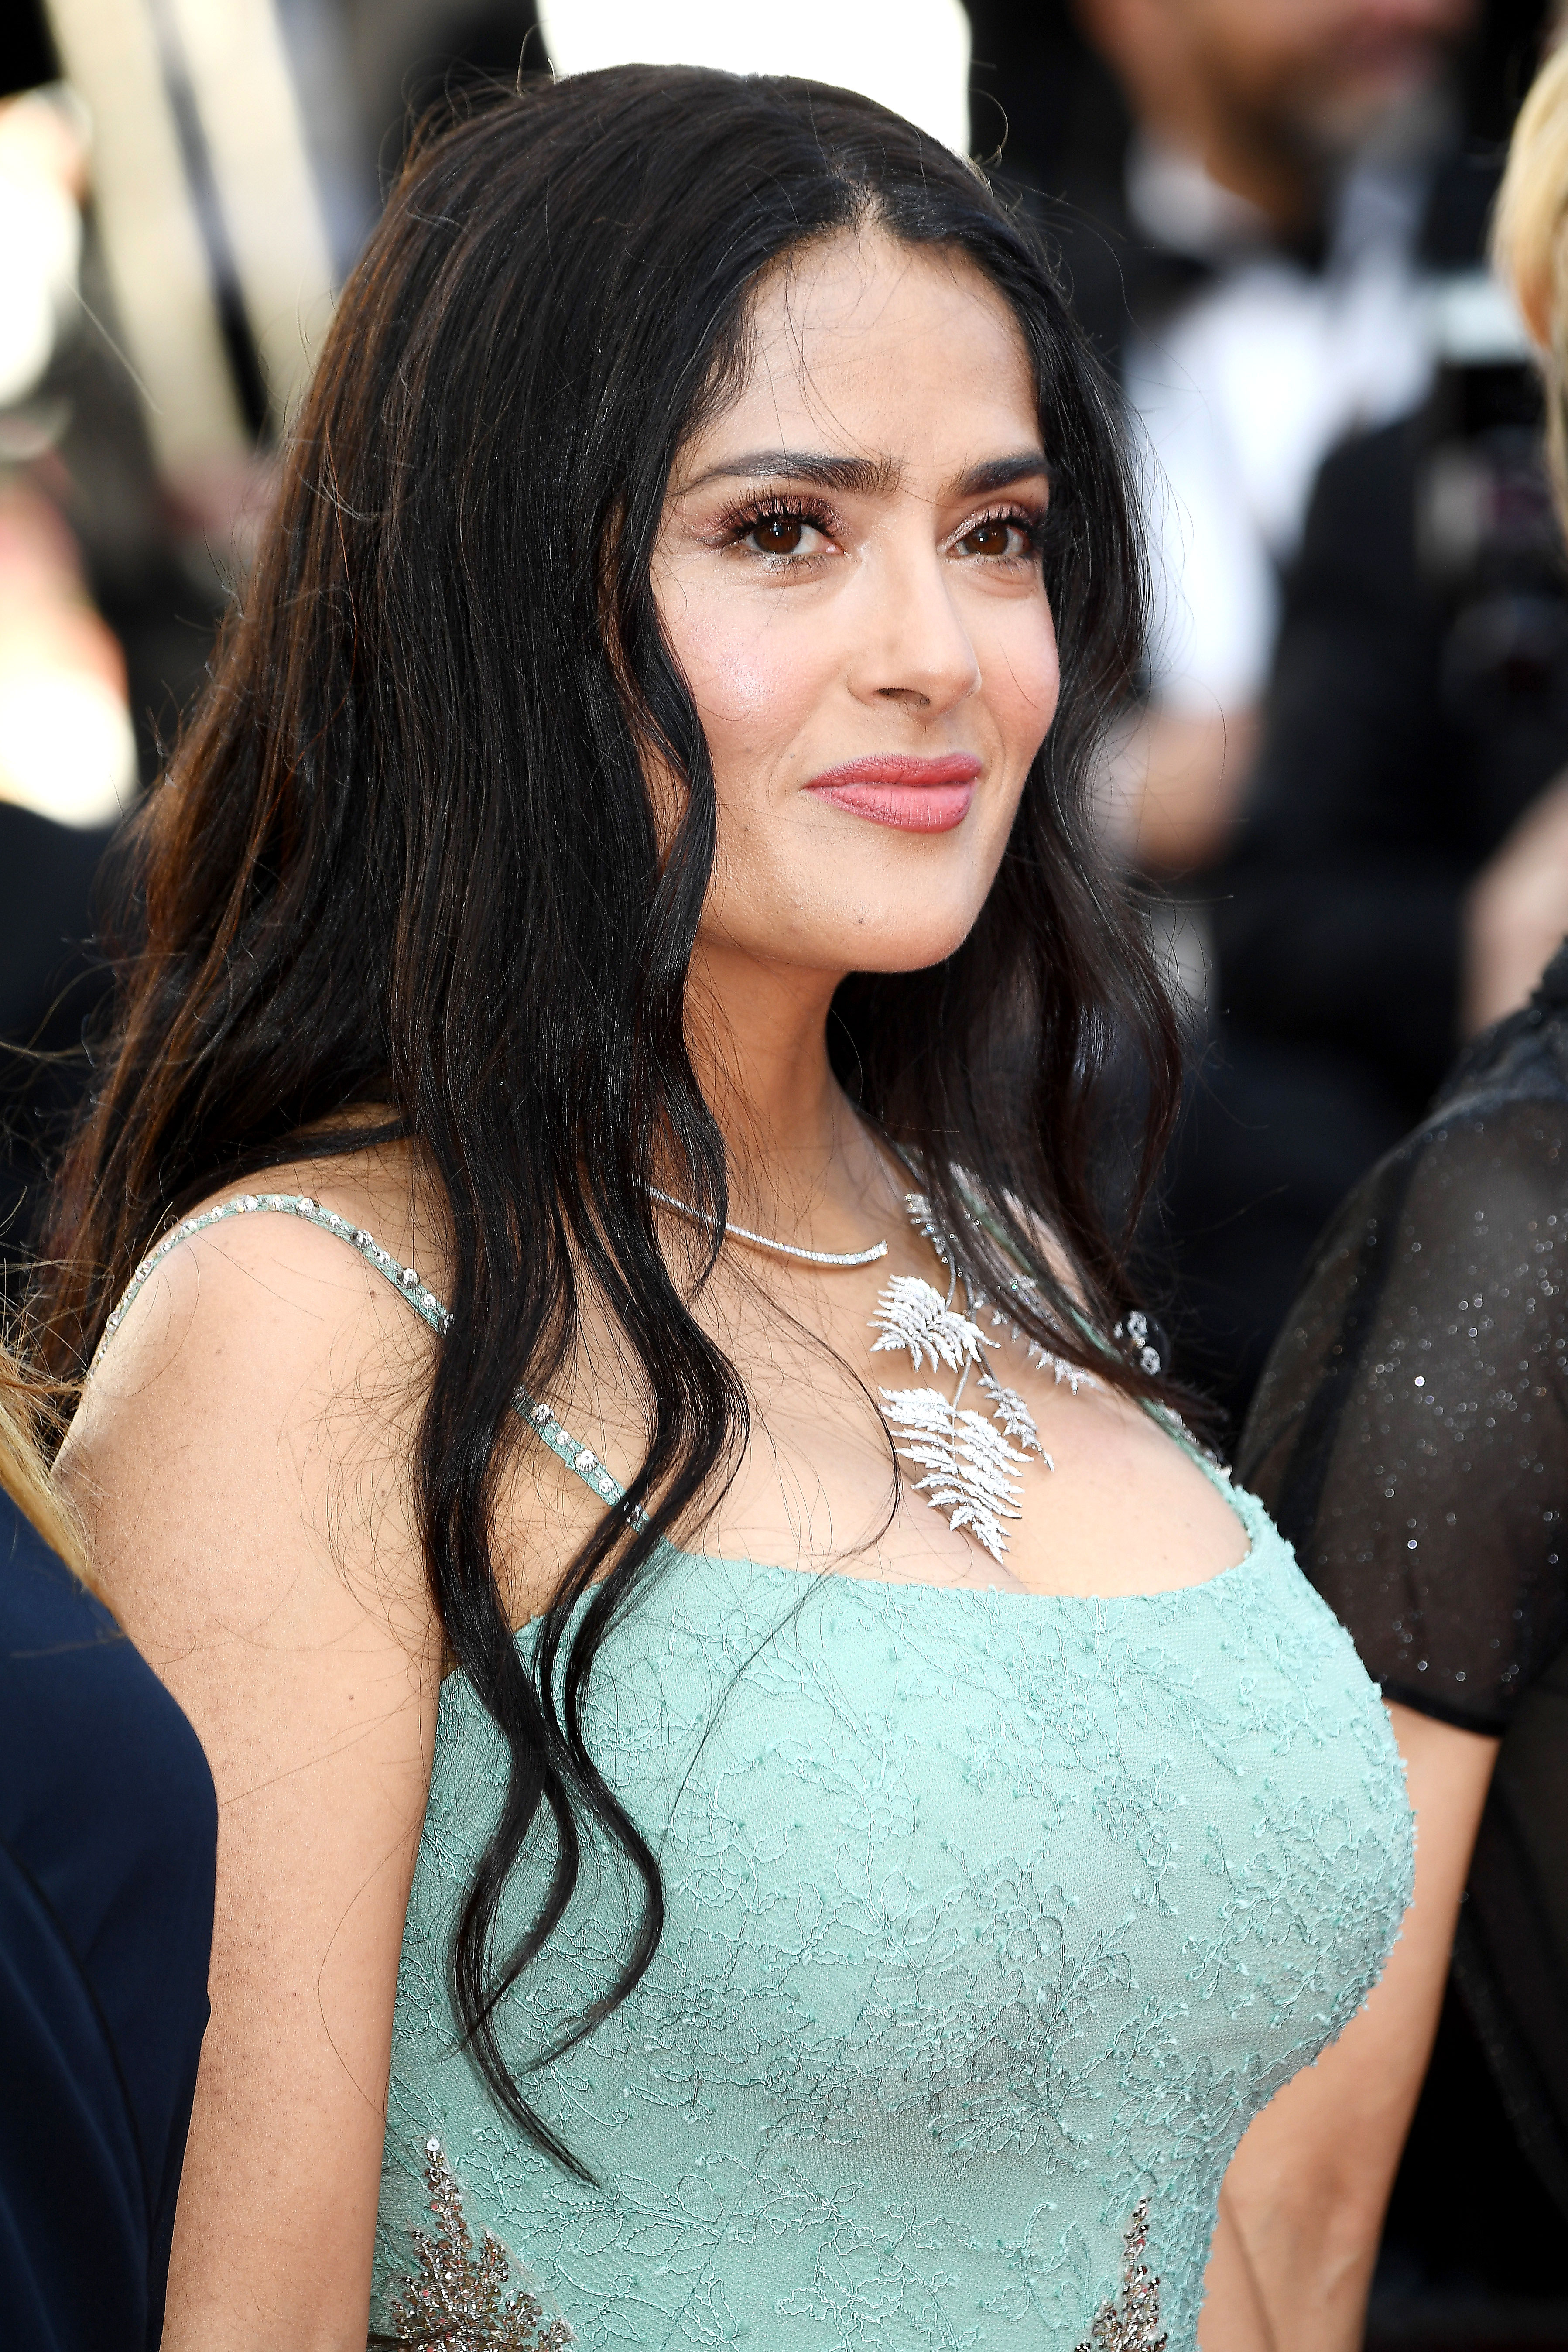 Salma Hayek's Glowing Makeup at 2018 Cannes Film Festival: How To - All World Report